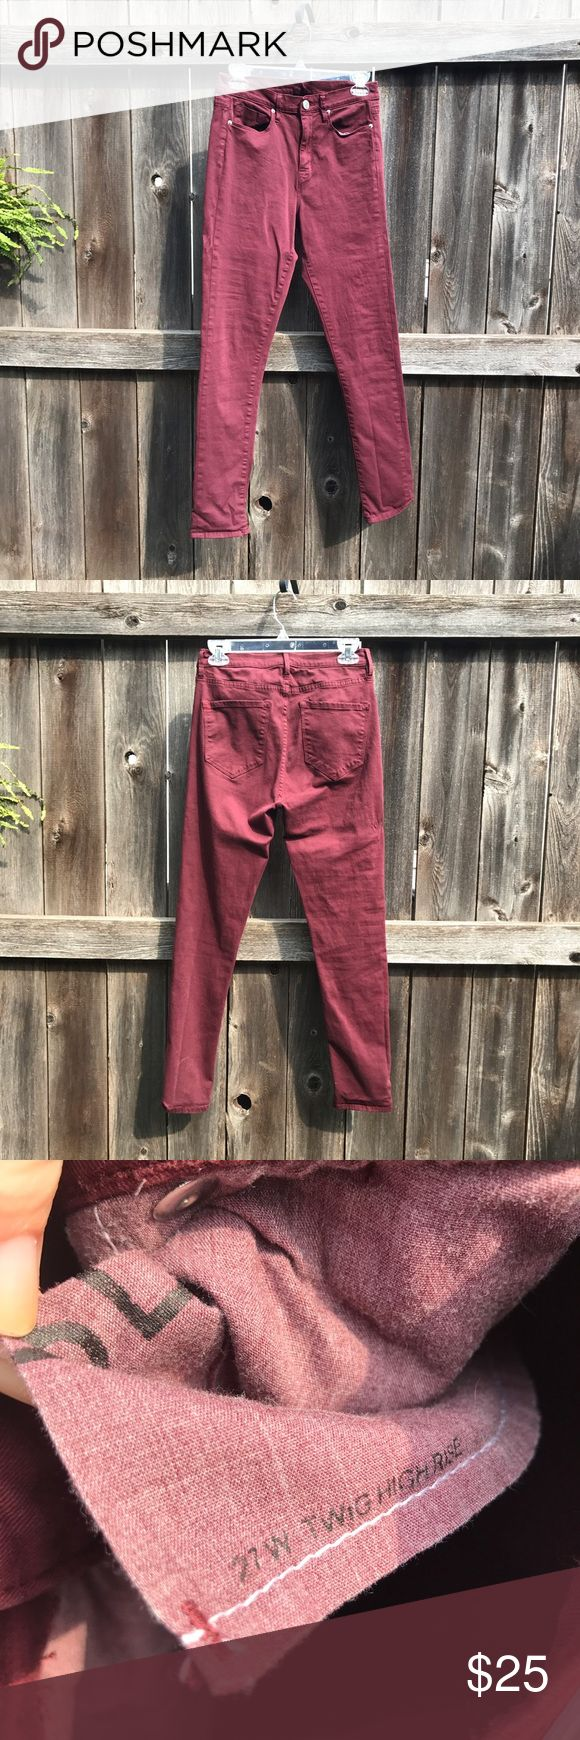 """BDG Twig High Rise Skinny Jeans These burgundy skinny jeans made by Urban Outfitters are so soft and comfortable! Cotton/Spandex Blend. Worn once - the waist didn't work for me. Labeled size 27. Waist 28""""; Inseam 29""""; Rise 11"""" Urban Outfitters Jeans Skinny"""